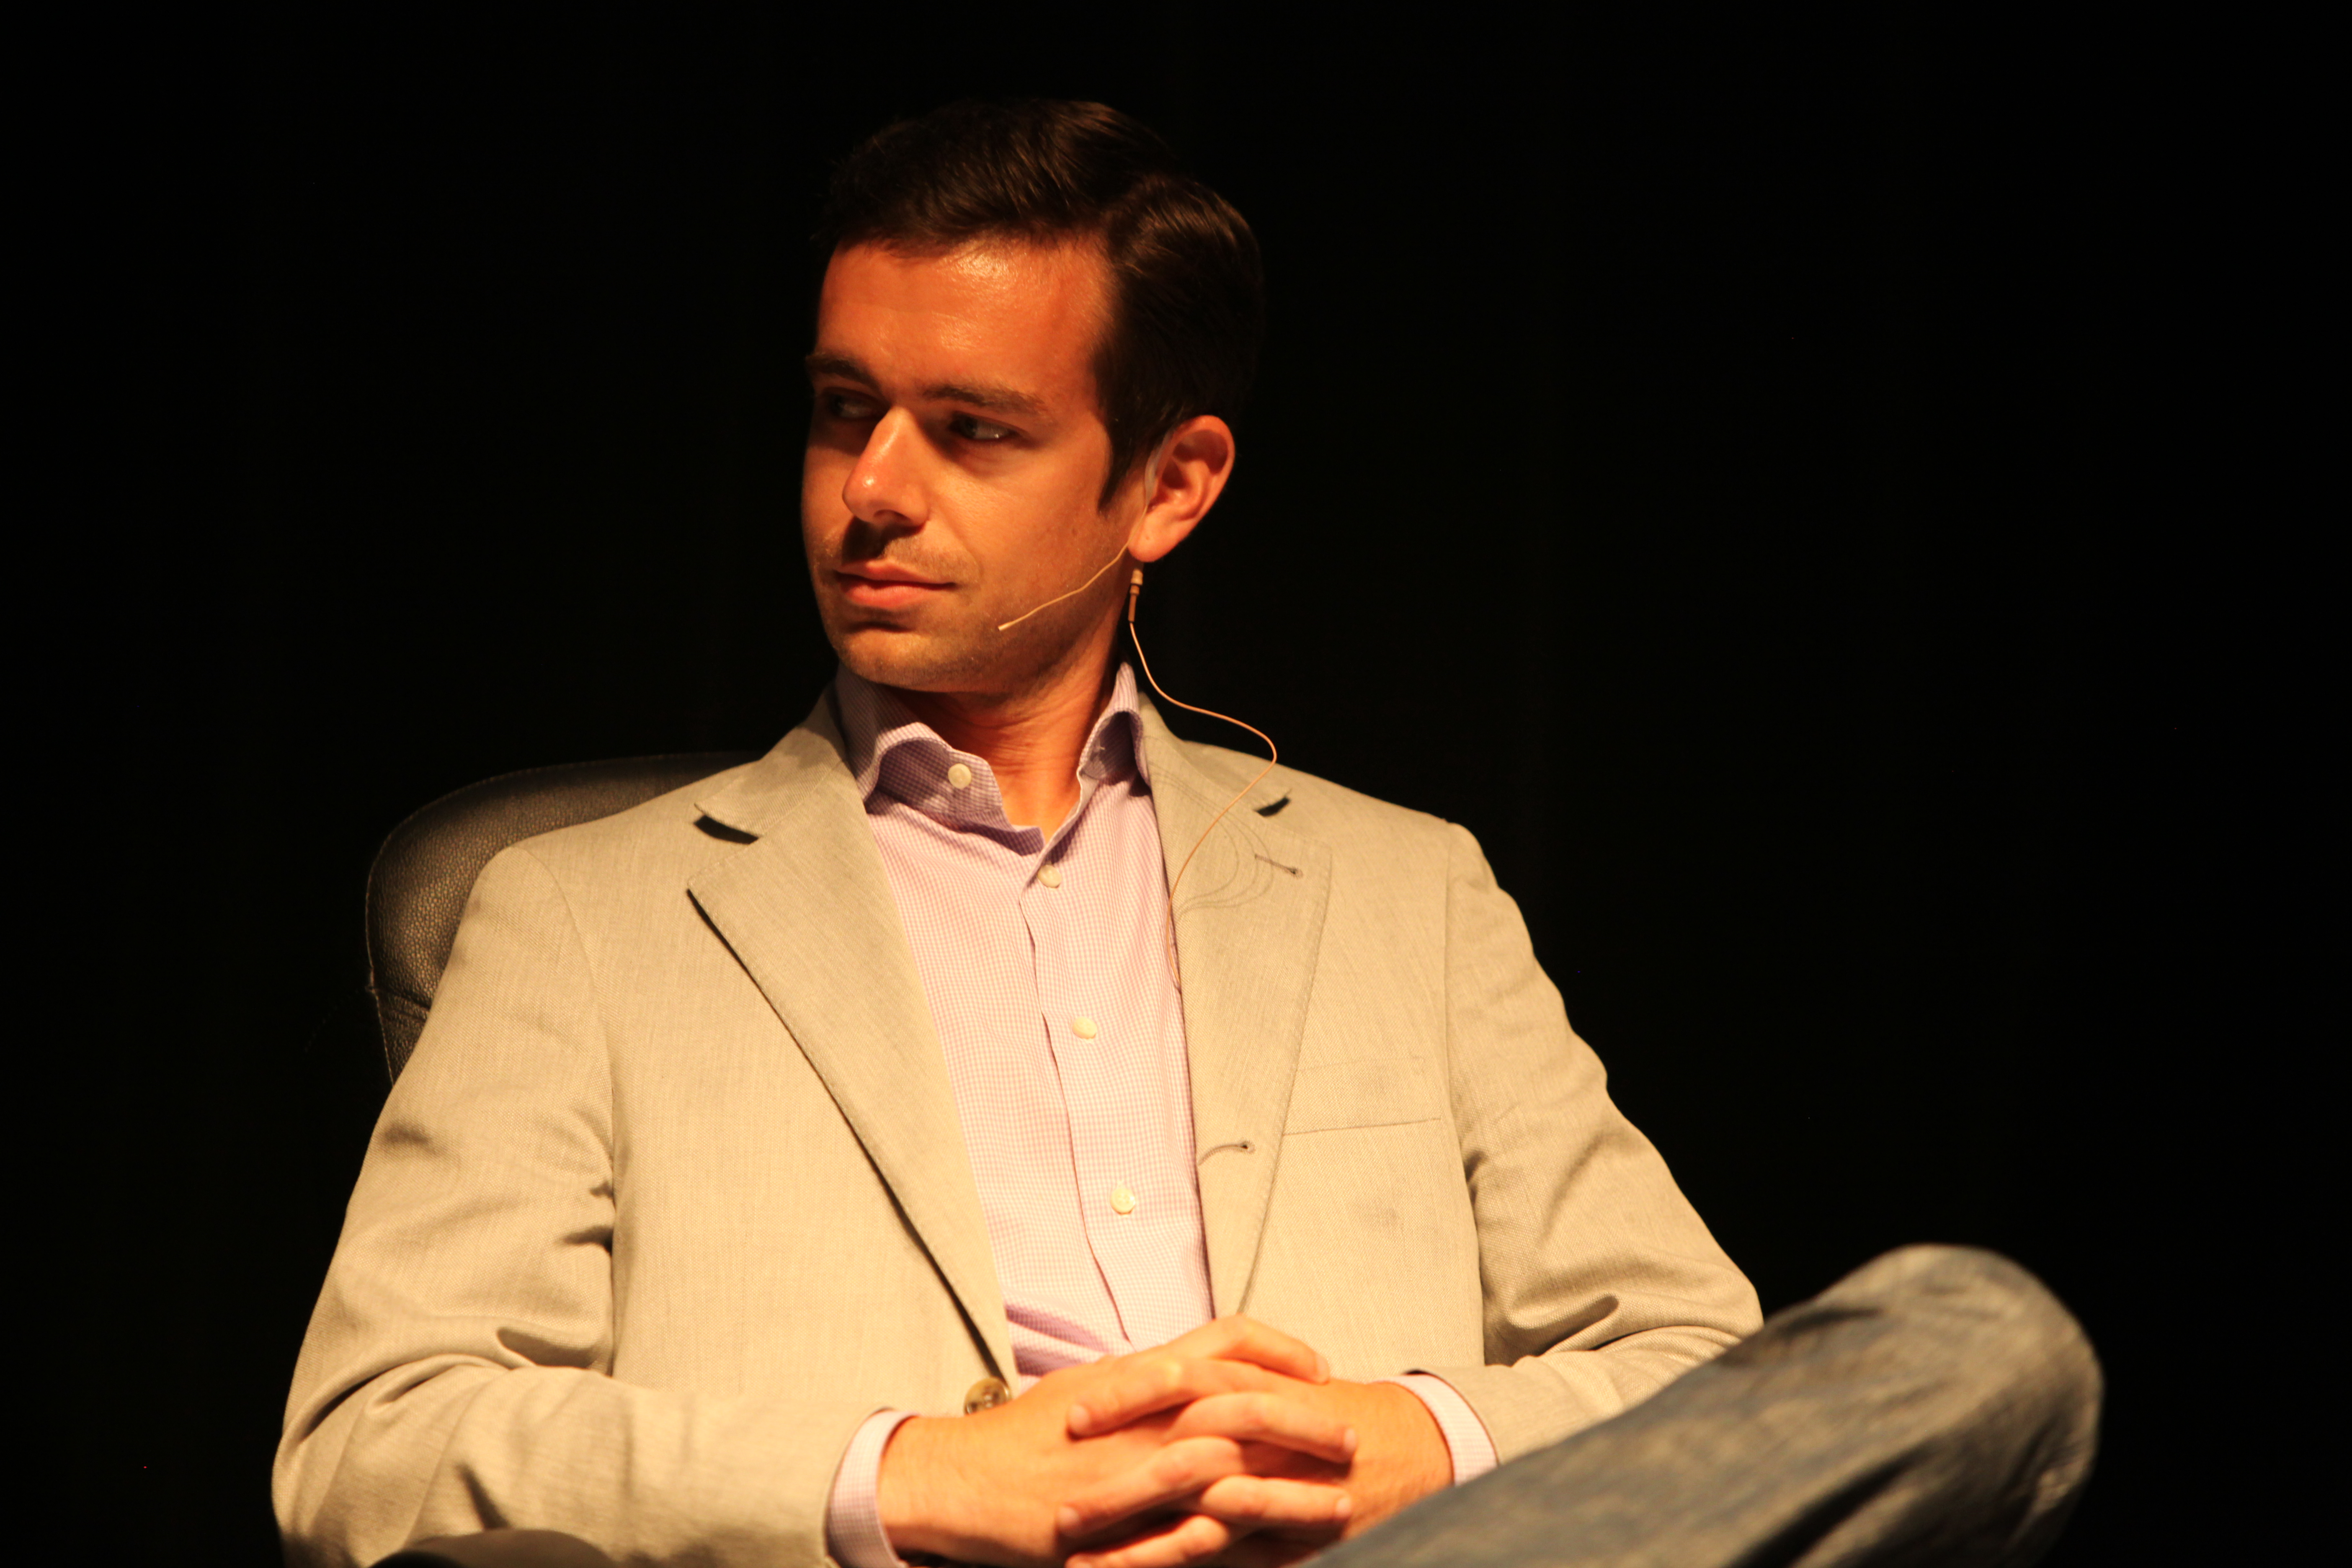 Jack Dorsey, a co-founder and the chairman of Twitter, in 2009.